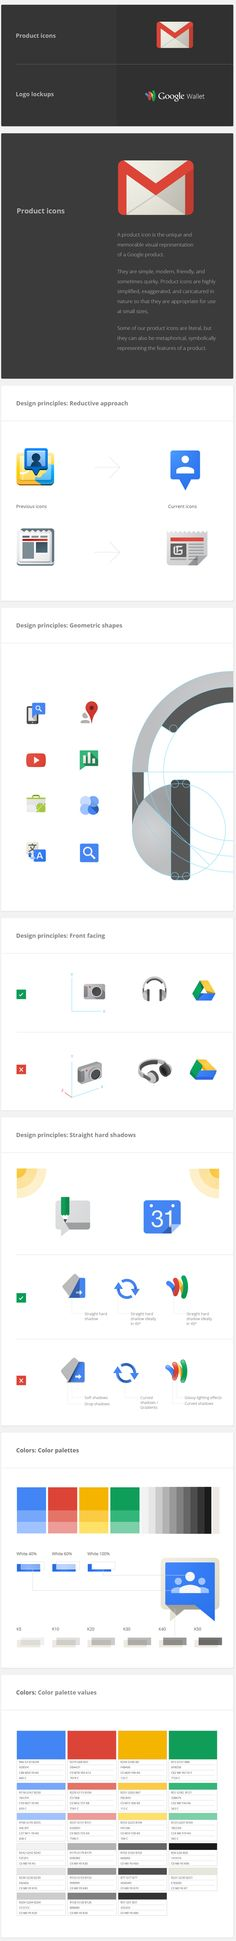 Google Visual Assets Guidelines - Part 1 by Roger Oddone, via Behance